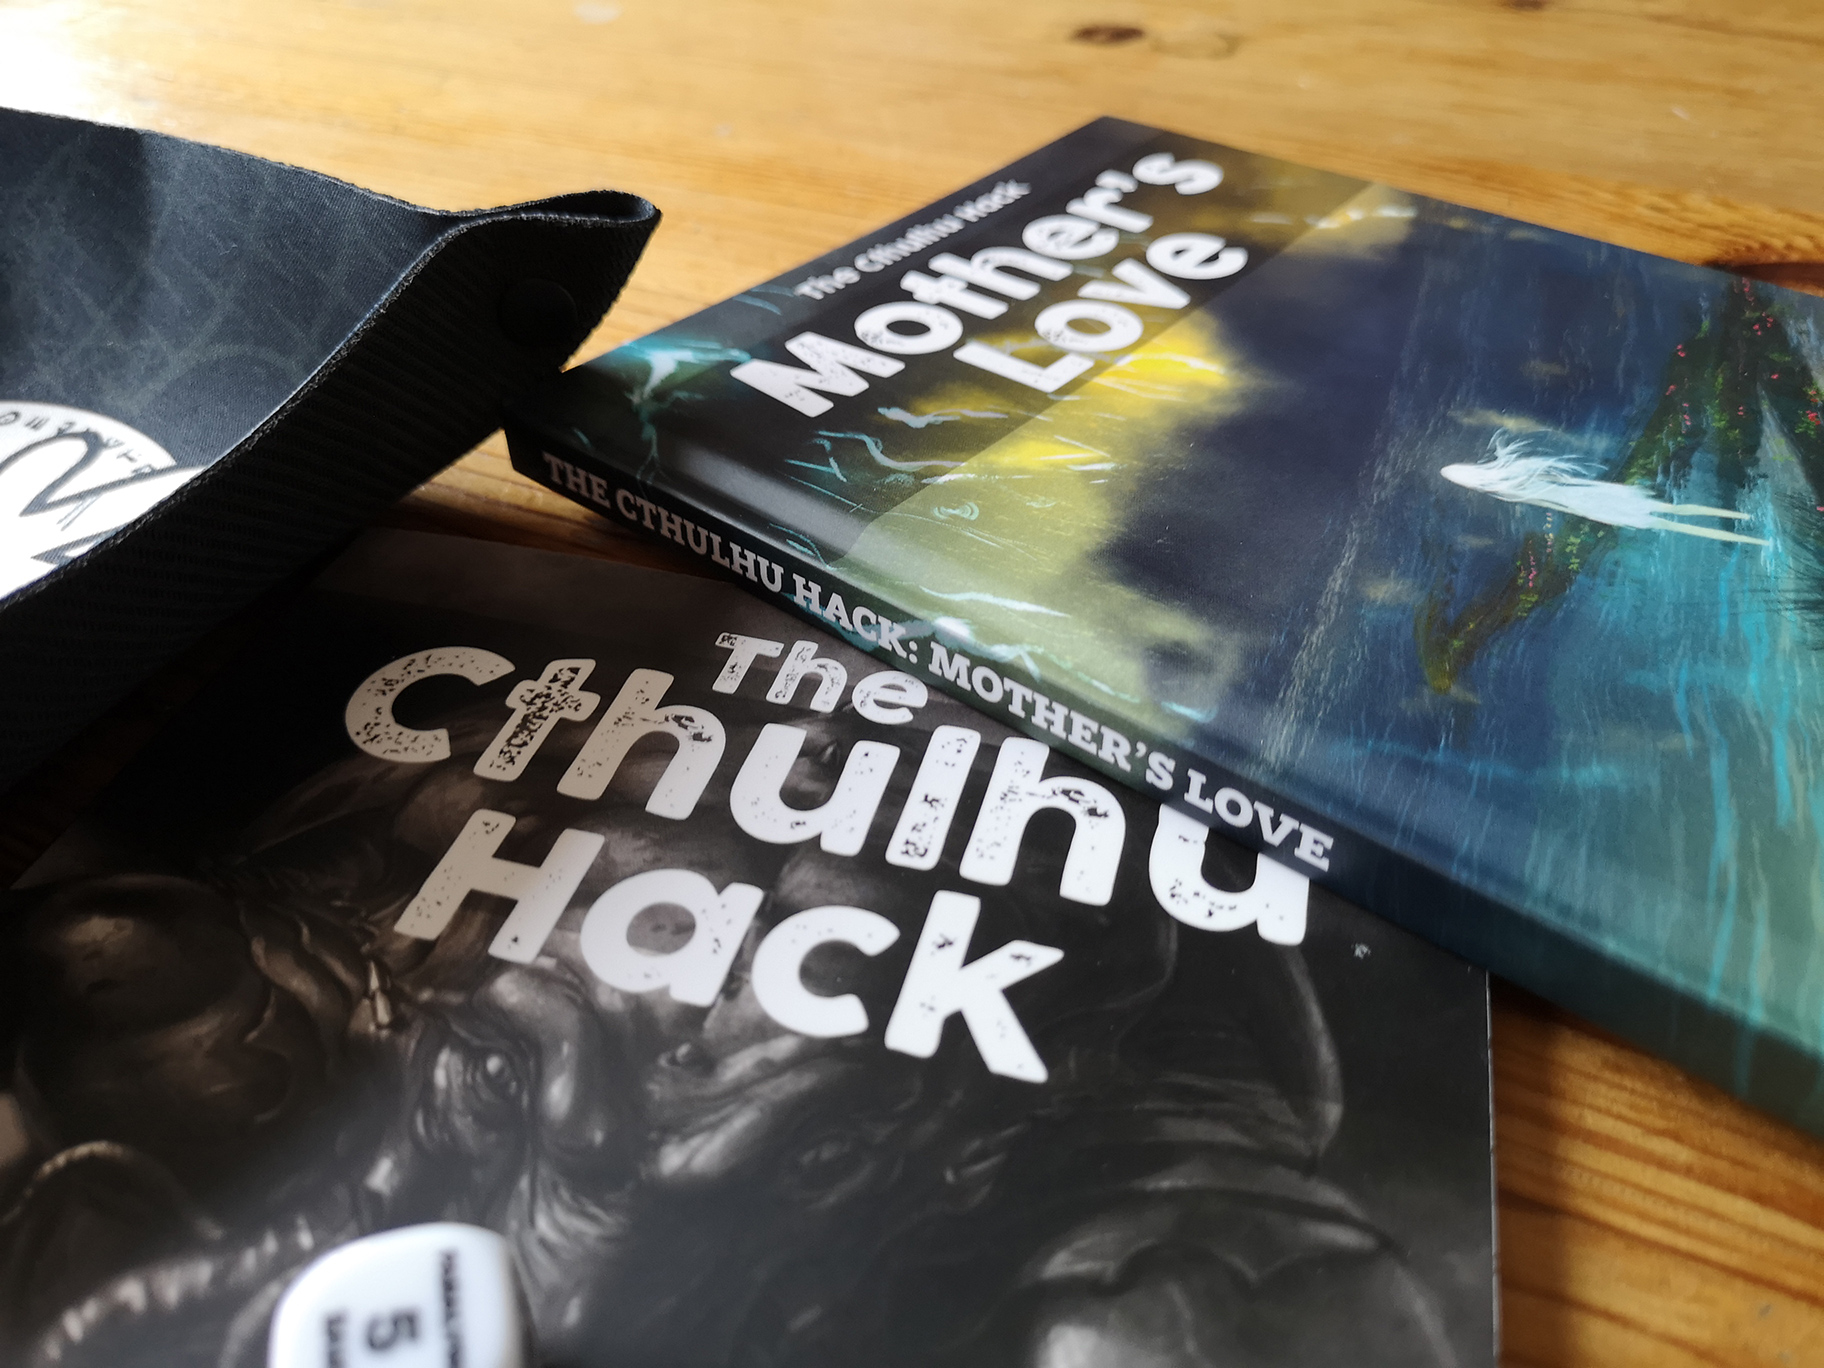 Promoting hardback book release with picture of Mothers Love, The Cthulhu Hack core book and dice tray